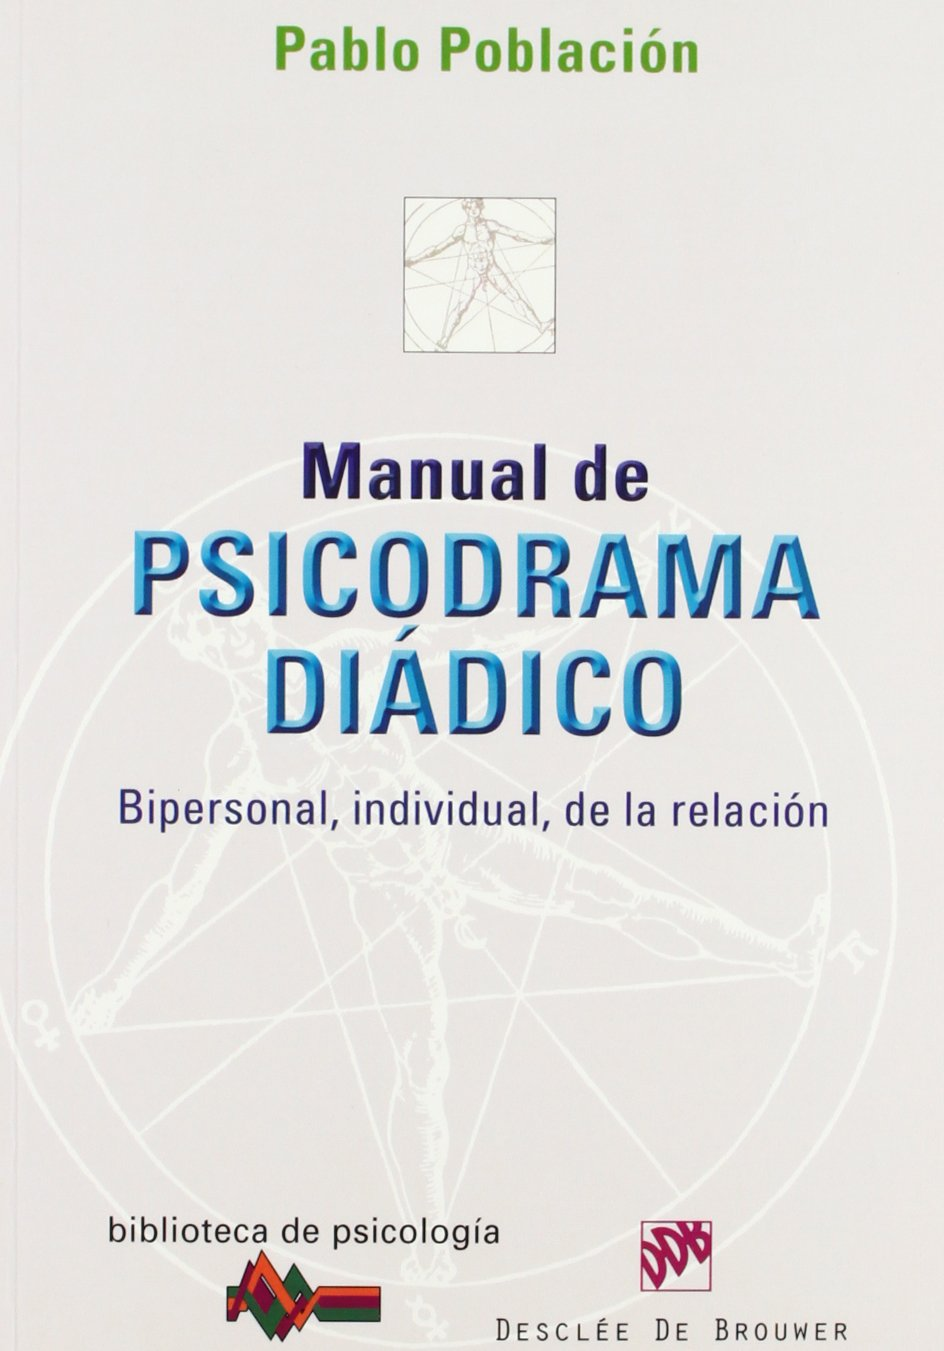 Manual de psicodrama diadico: Pablo Poblacion: 9788433024190: Amazon.com: Books